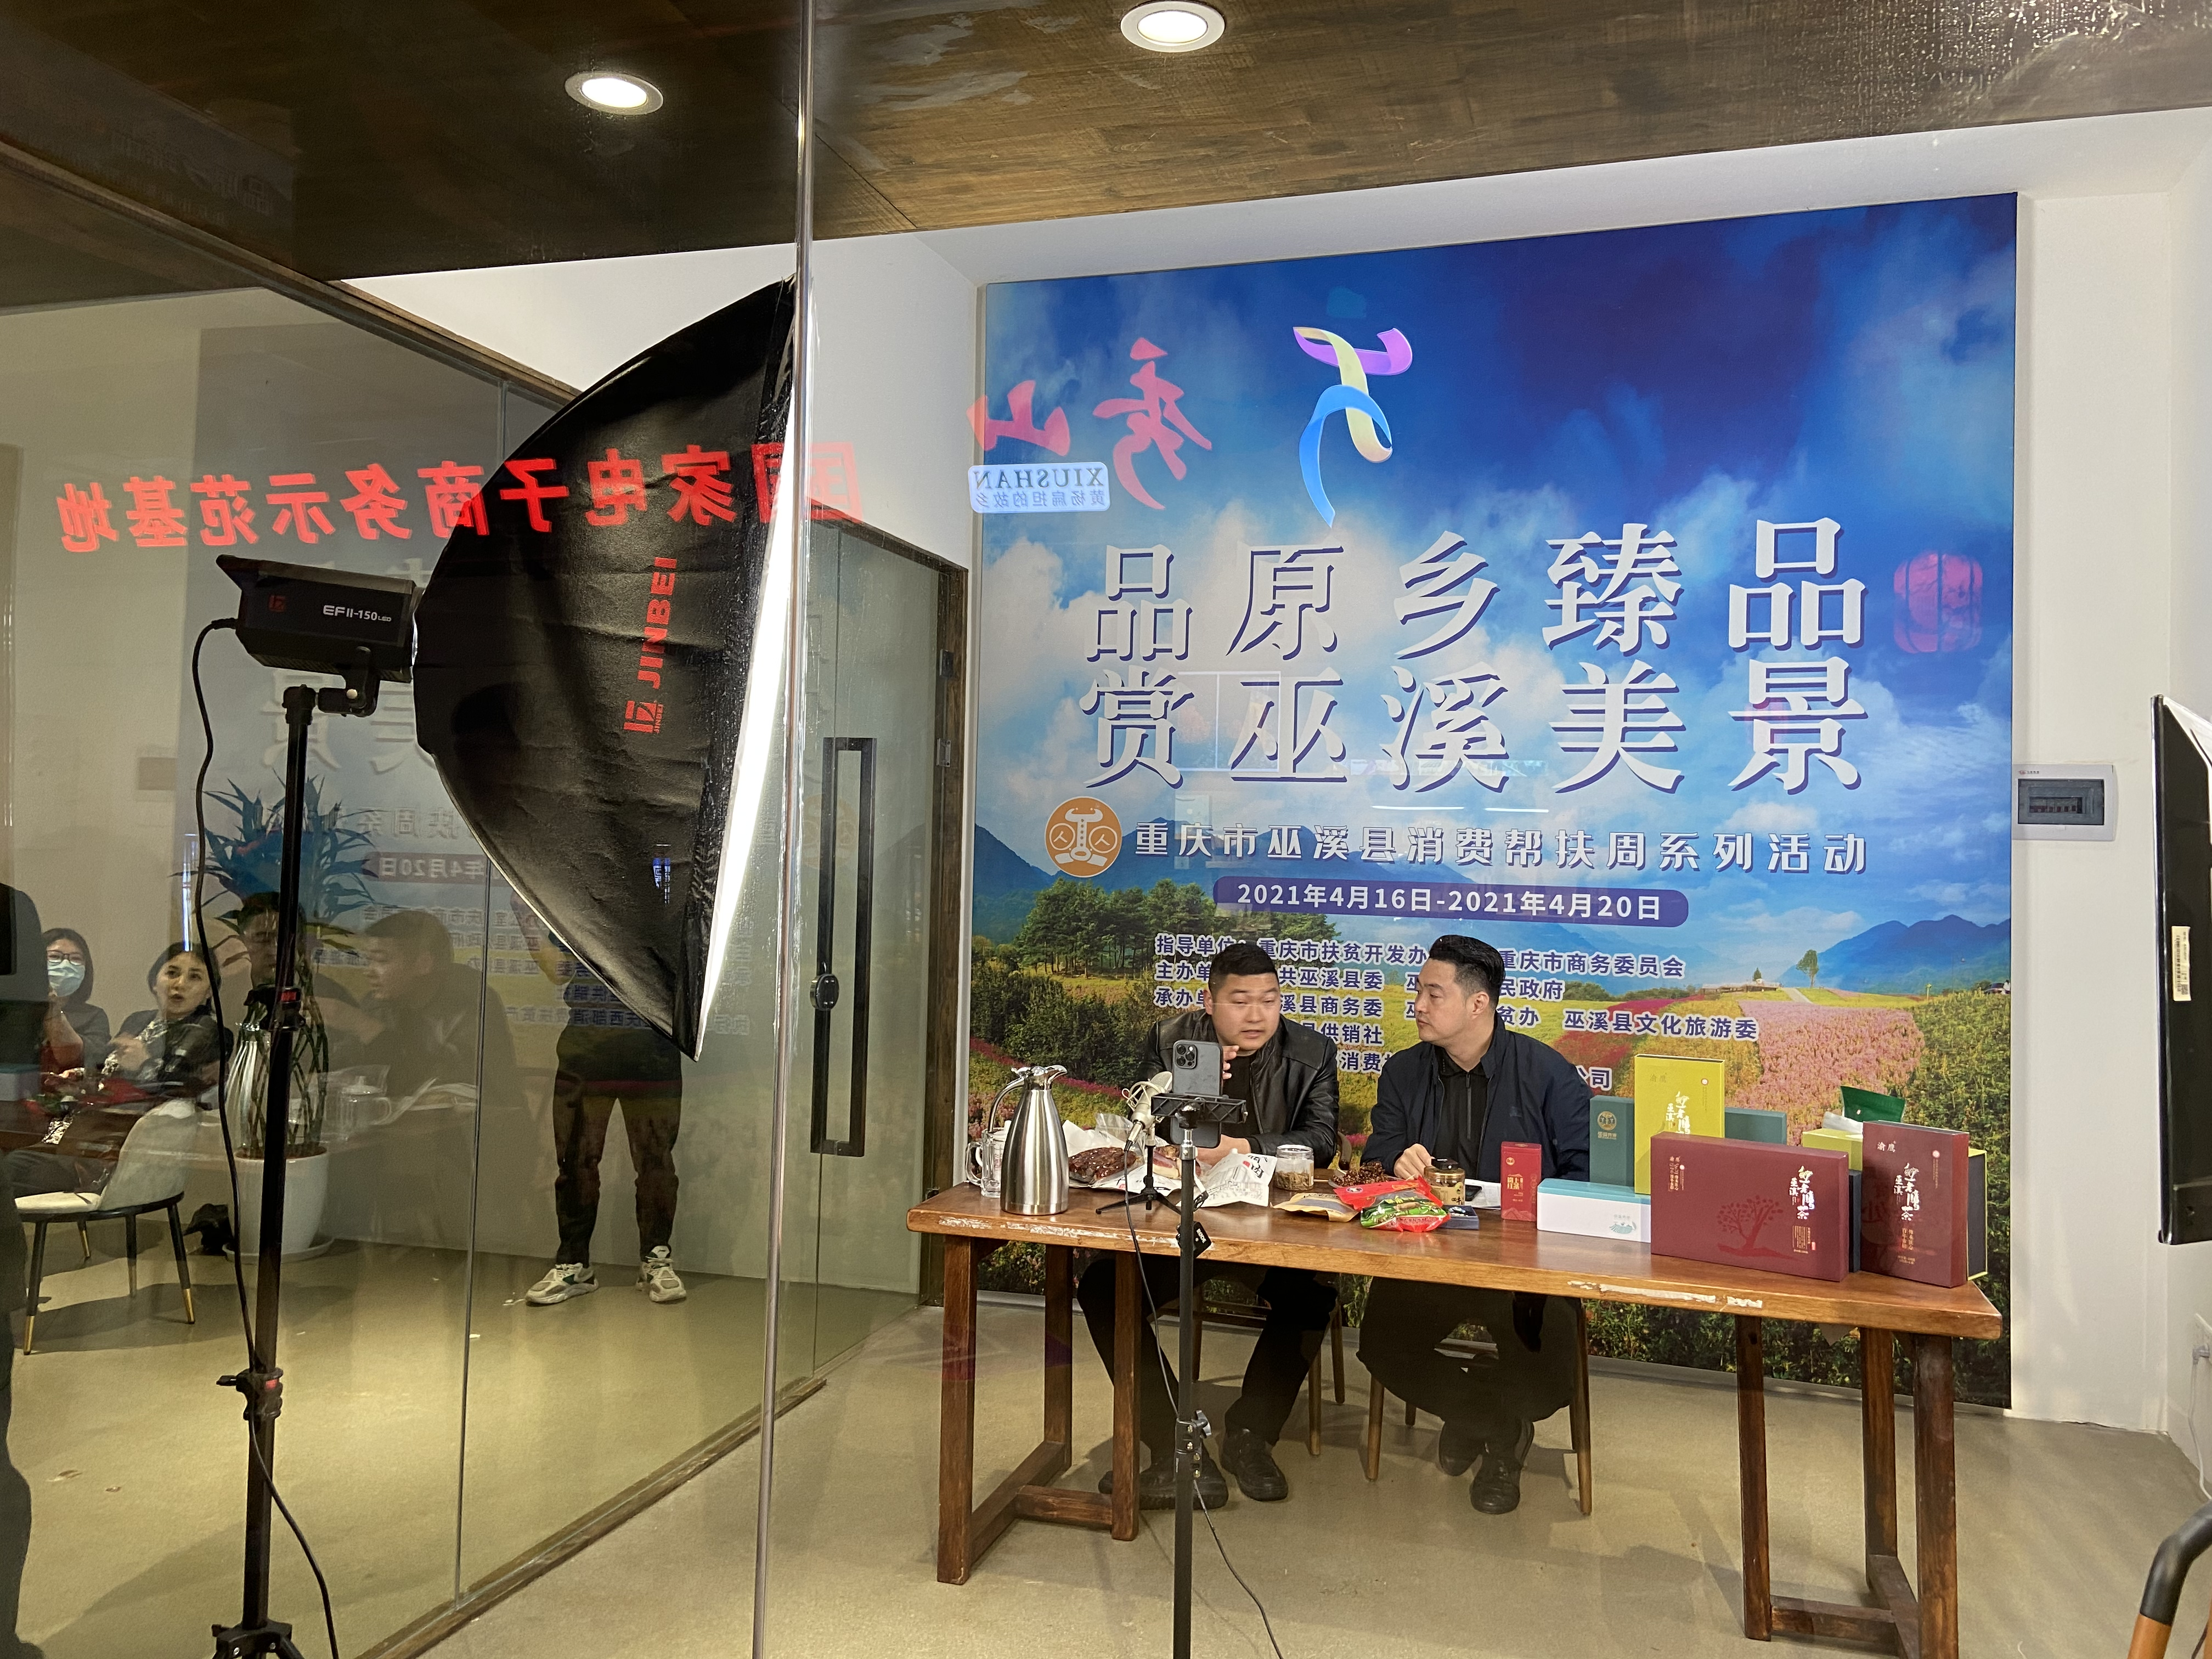 Livestream selling products in the Wuxi Hall of the center.